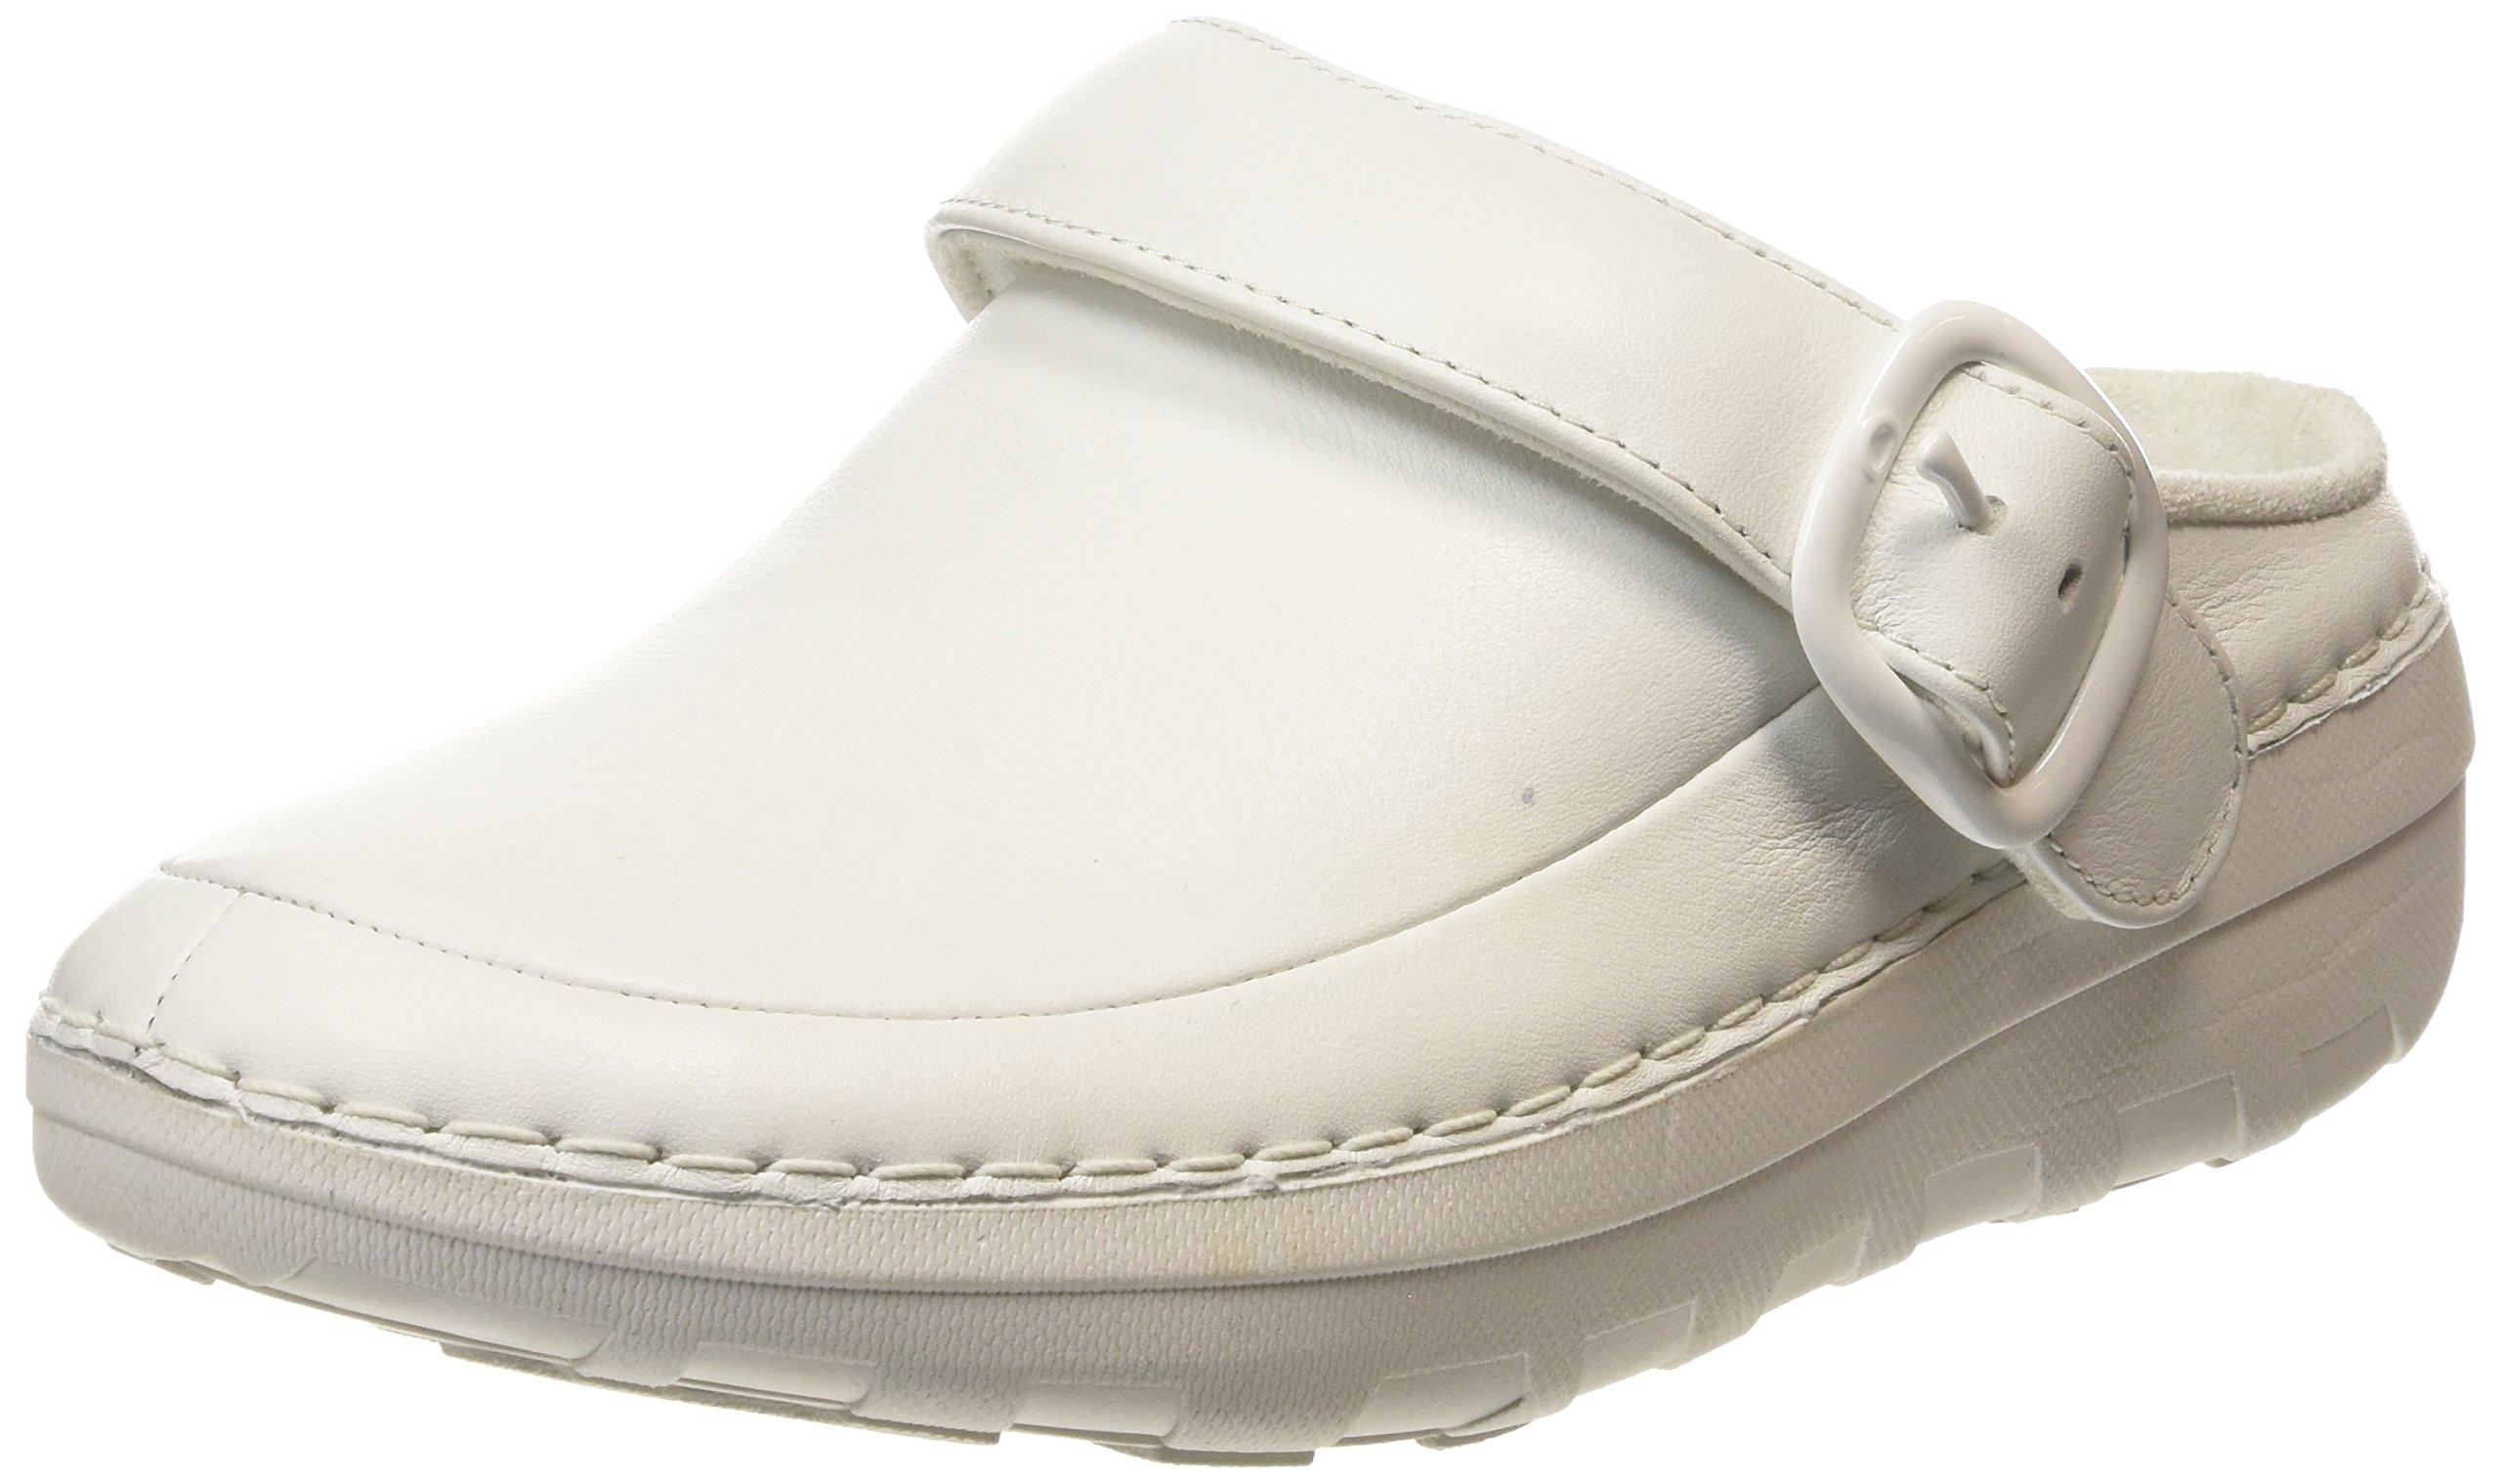 FitFlop Women's Gogh PRO Superlight Medical Professional Shoe, Urban White, 8.5 M US